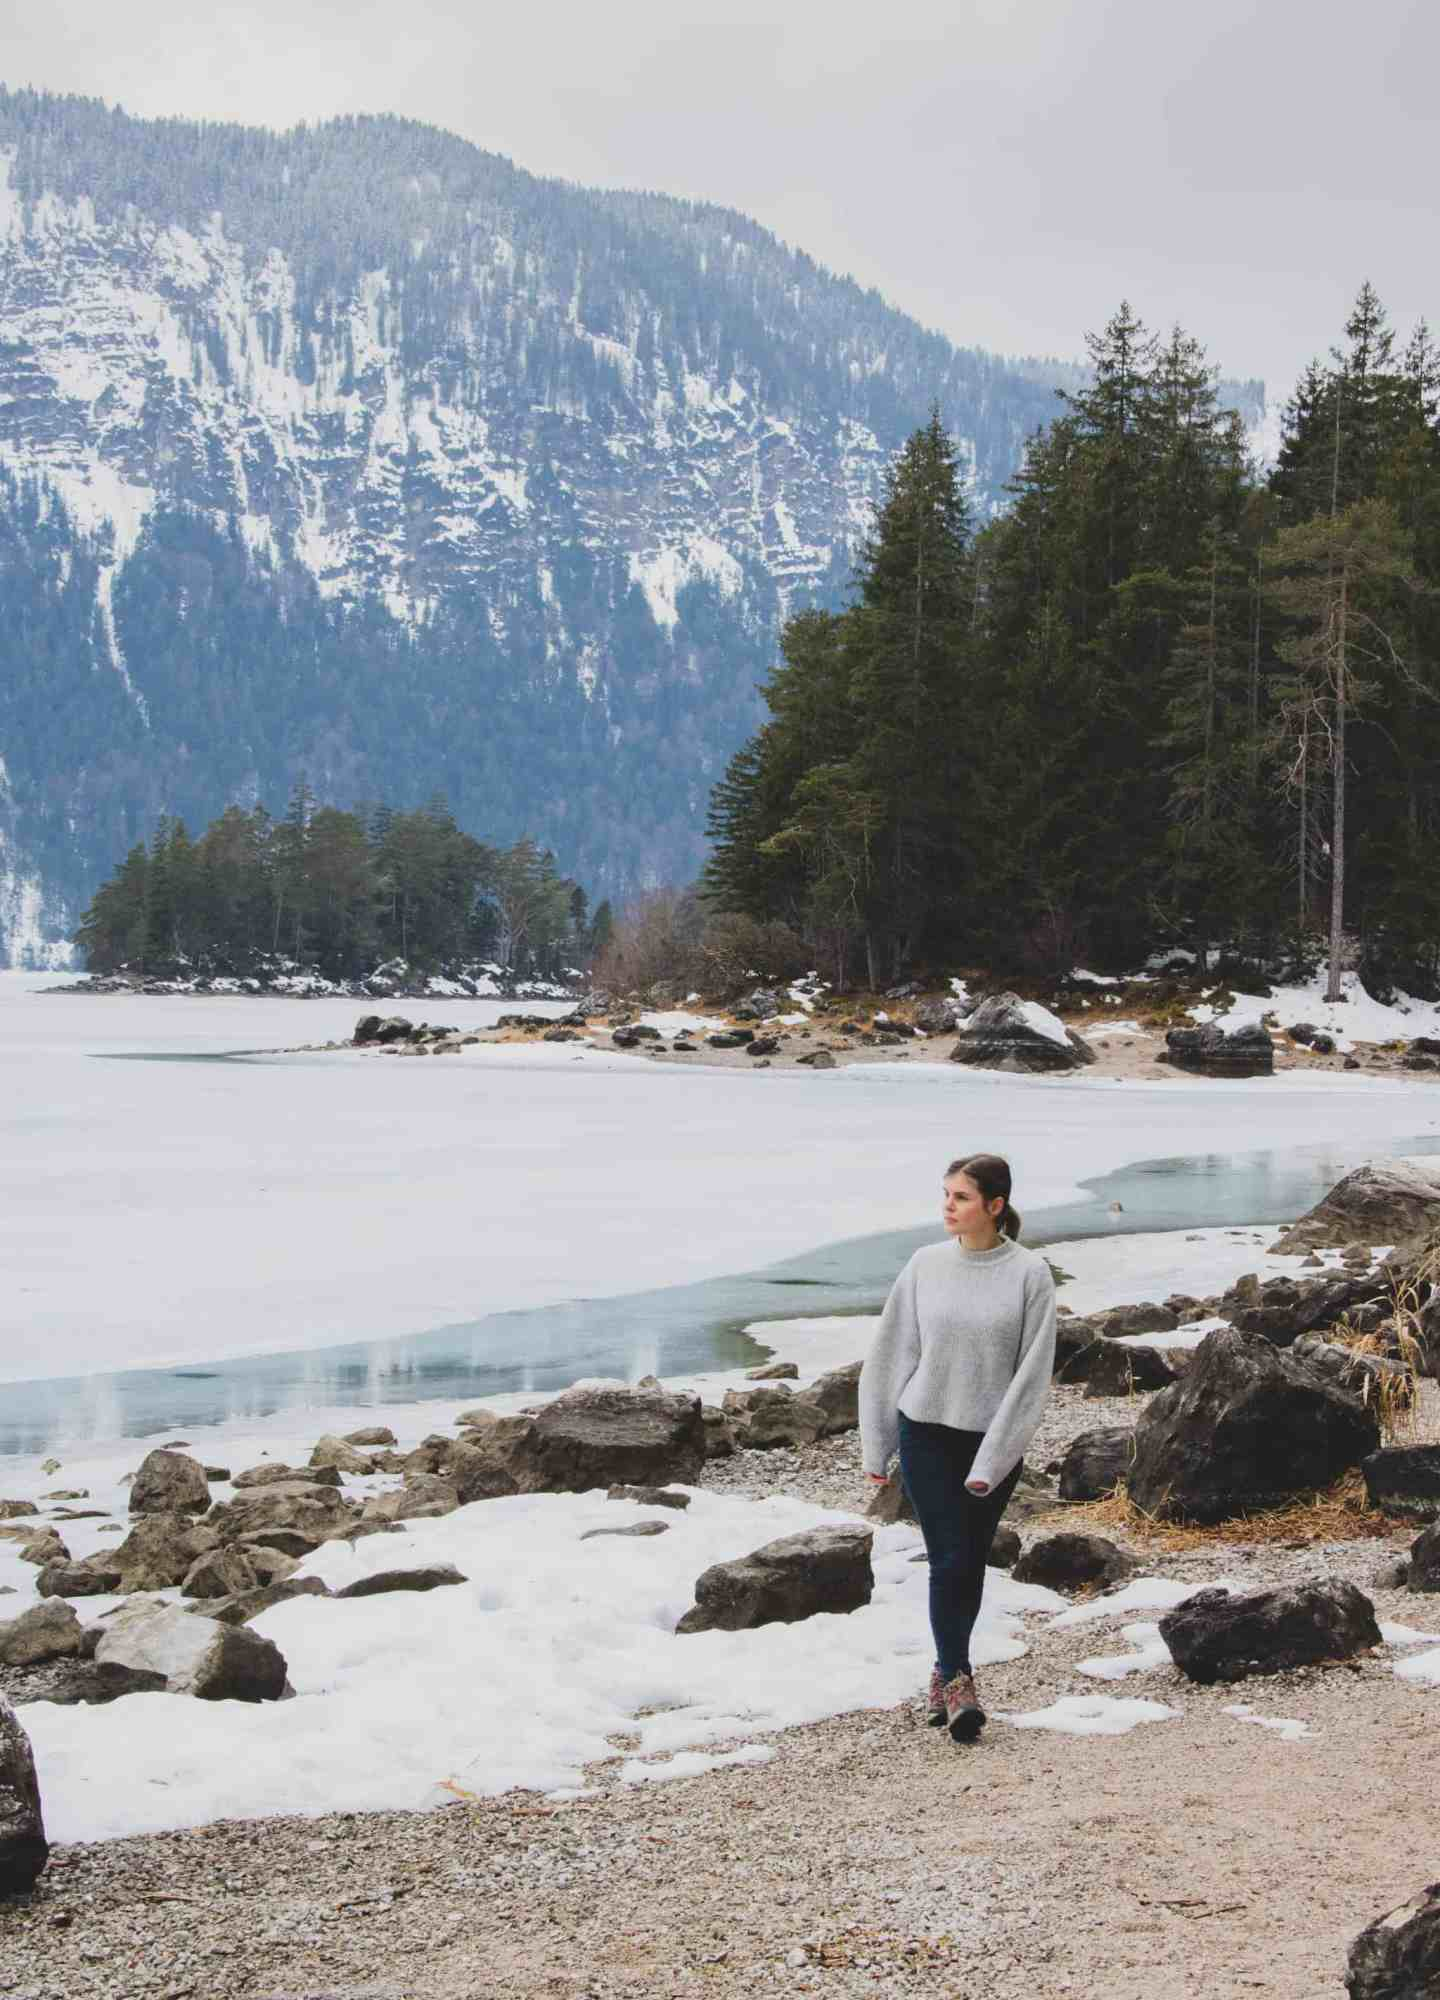 Girl walking next to a frozen lake with a mountain and pine trees behind